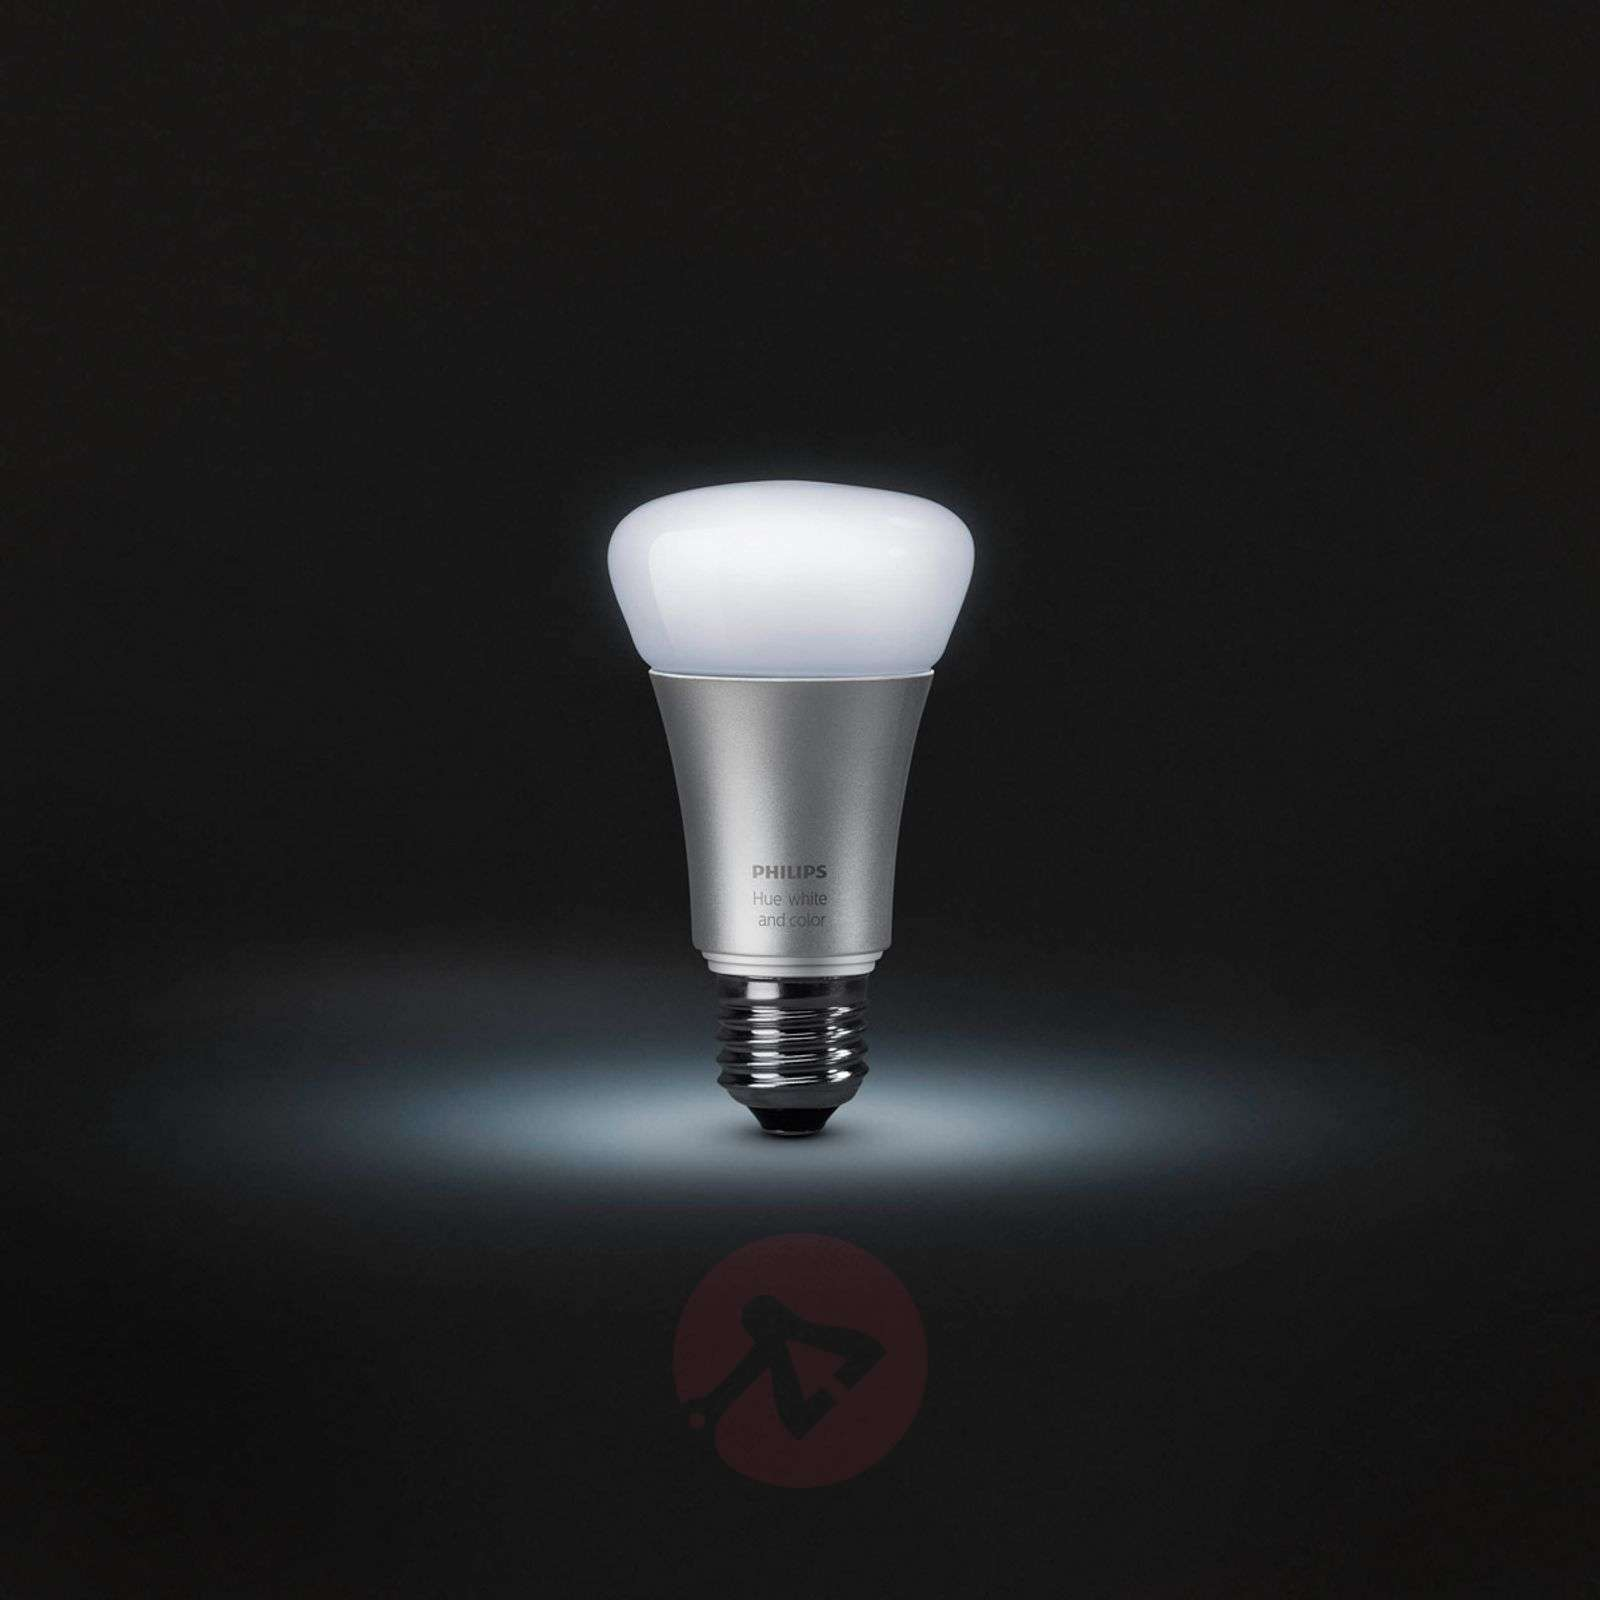 Ampoule Philips Hue White + Color Ambiance E27 10W-7531677-01